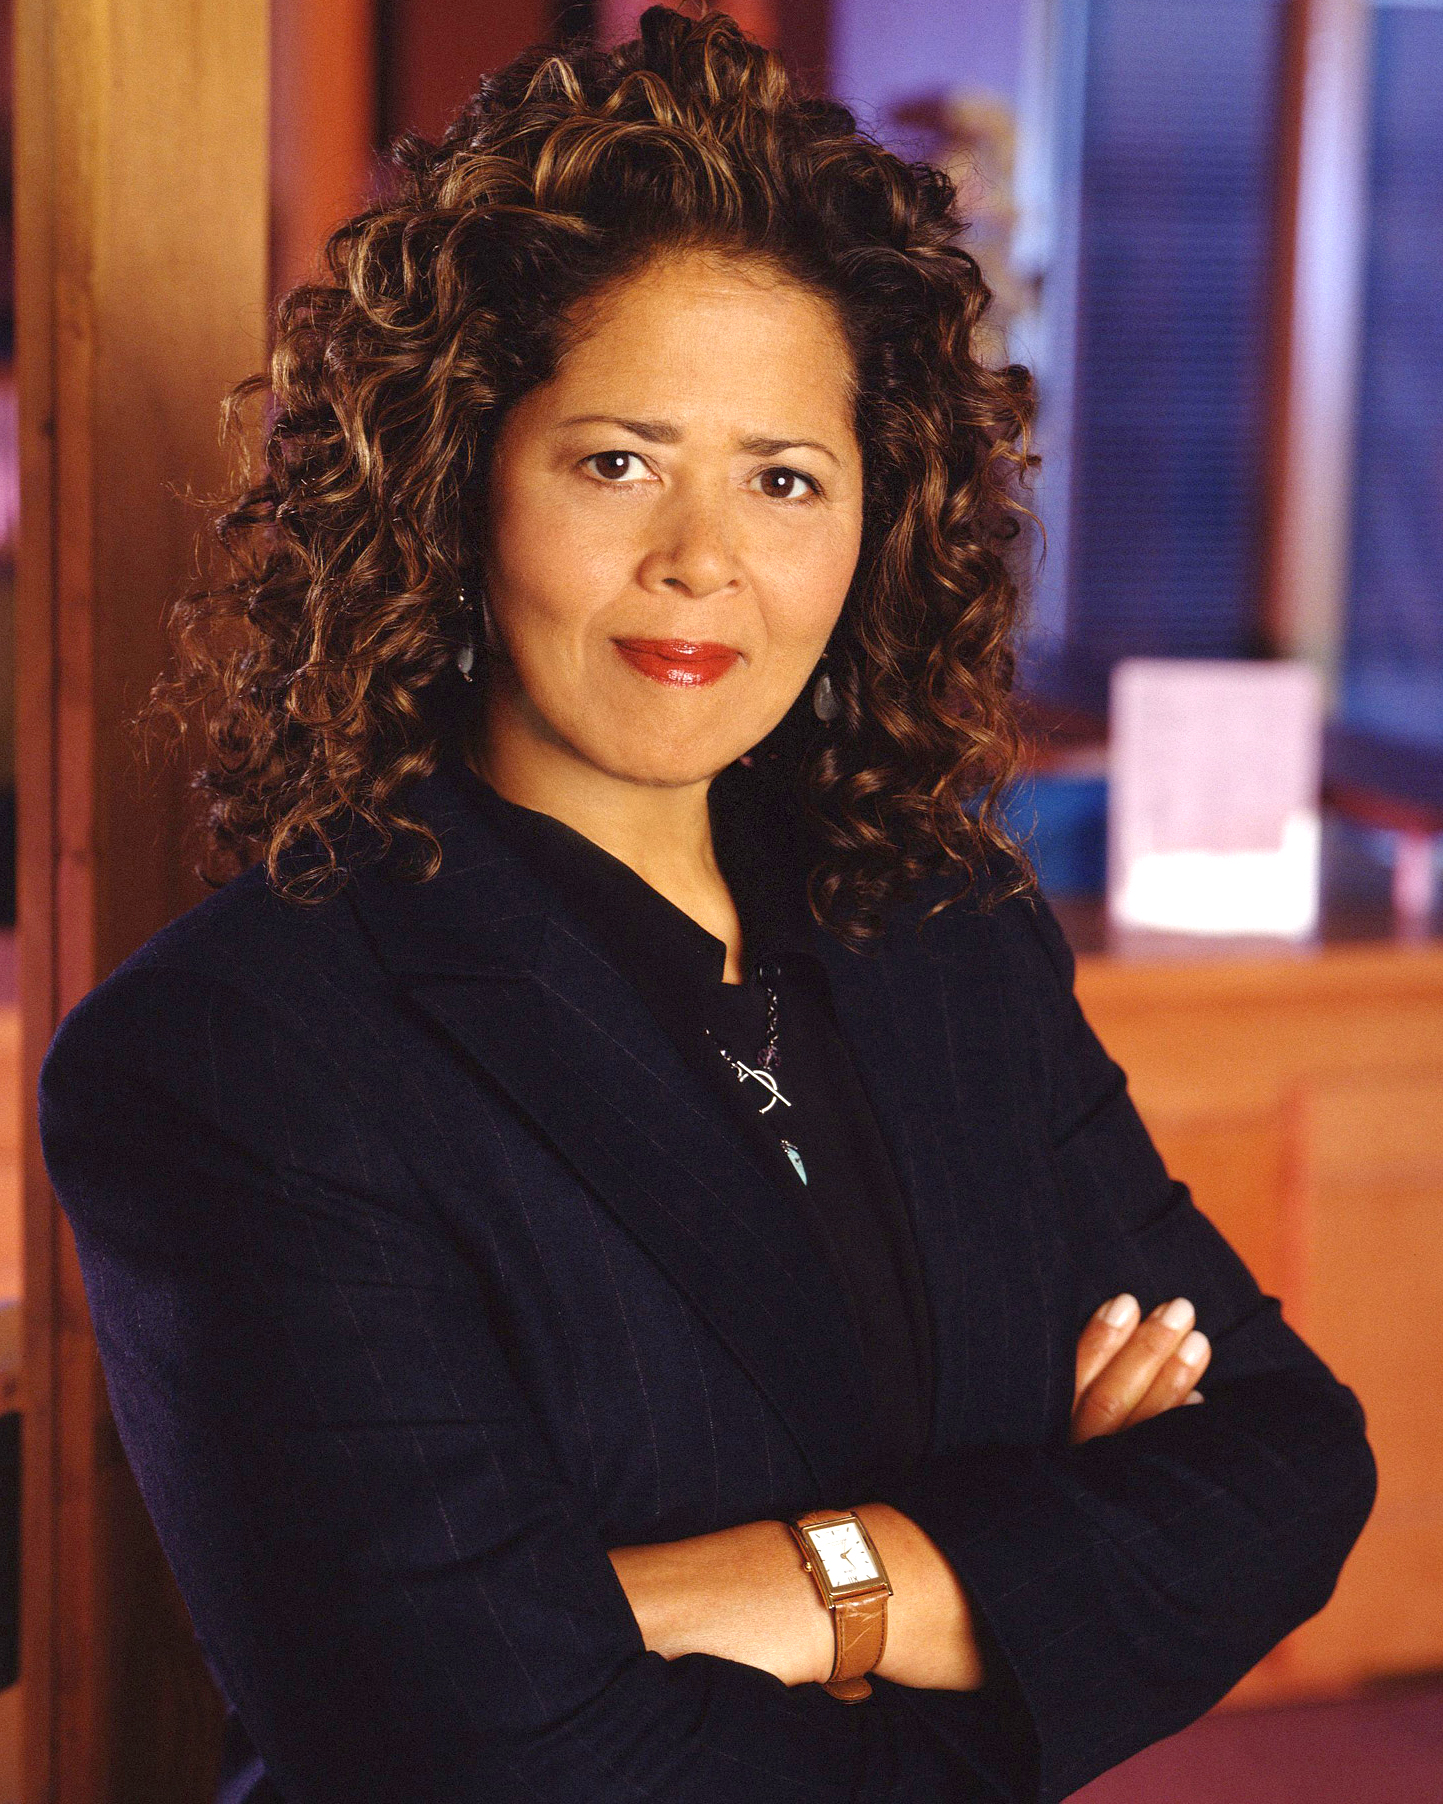 Baltimore, Maryland, USA, 1950-09-18, Anna Deavere Smith